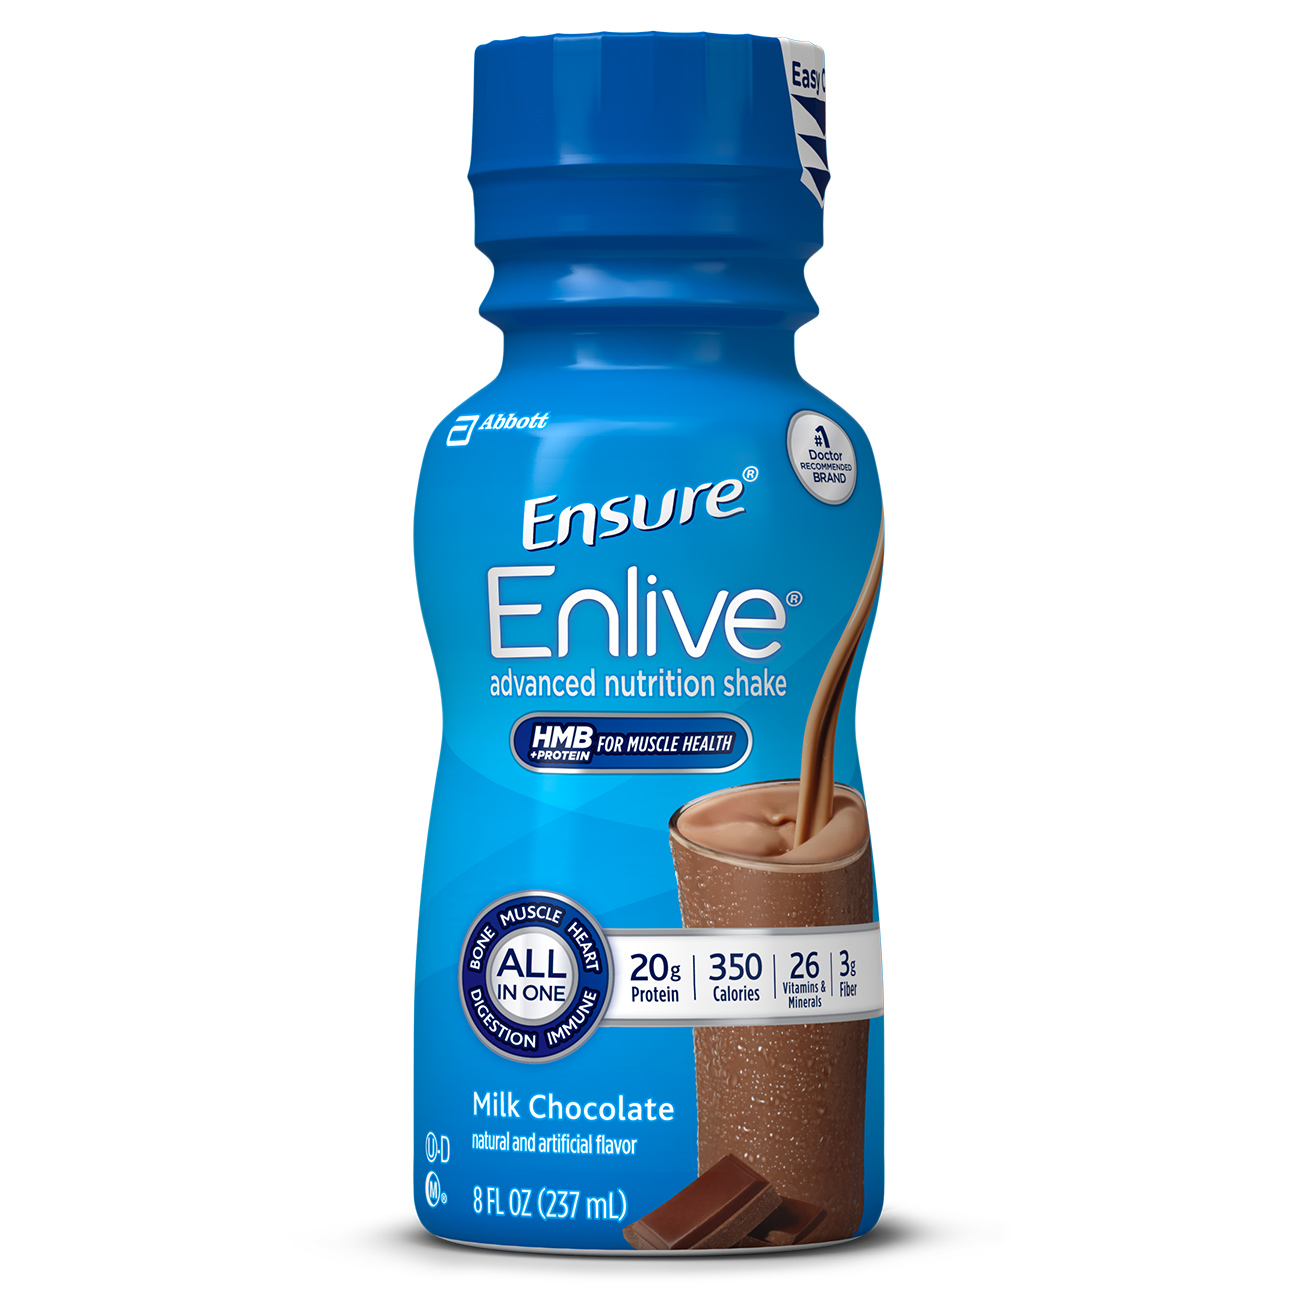 Ensure Enlive Advanced Nutrition Shake Milk Chocolate with 20 grams of high-quality protein, Meal Replacement Shakes, 8 Fl oz, 12 Ct